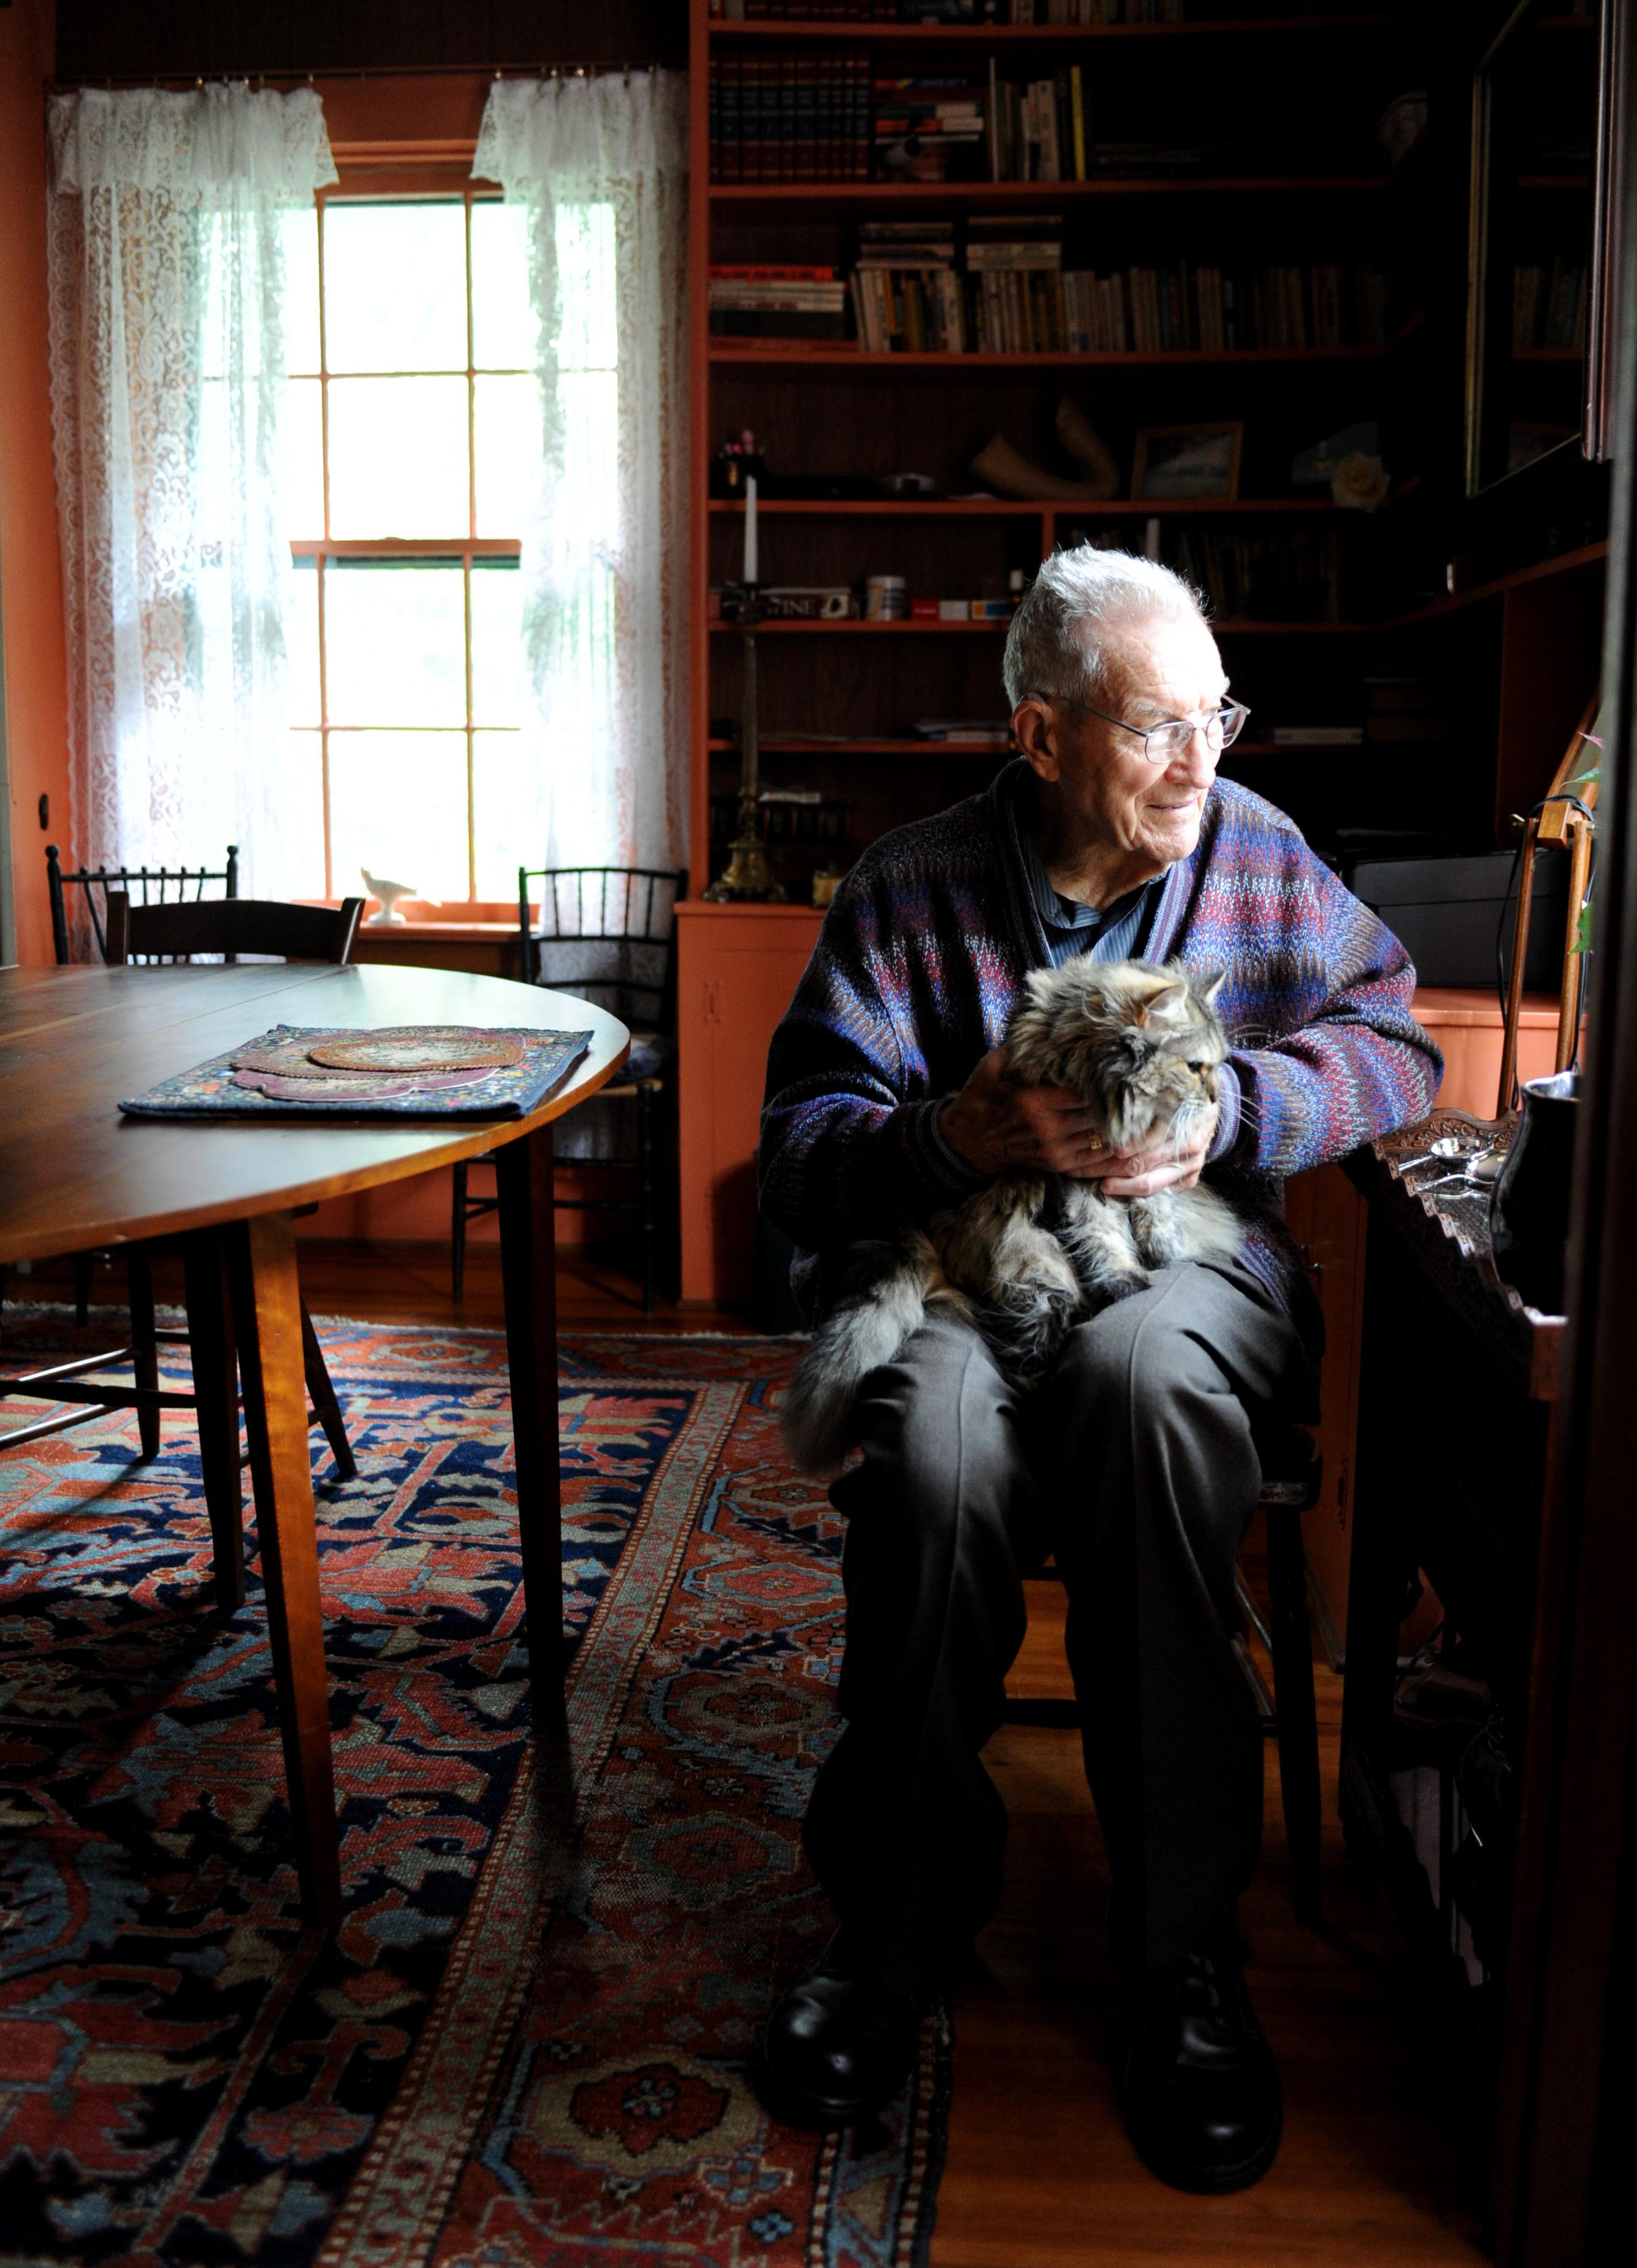 Robert E. Gilka and his cat at his home in Arlington, VA, in 2010. Photographs by J. Bruce Baumann